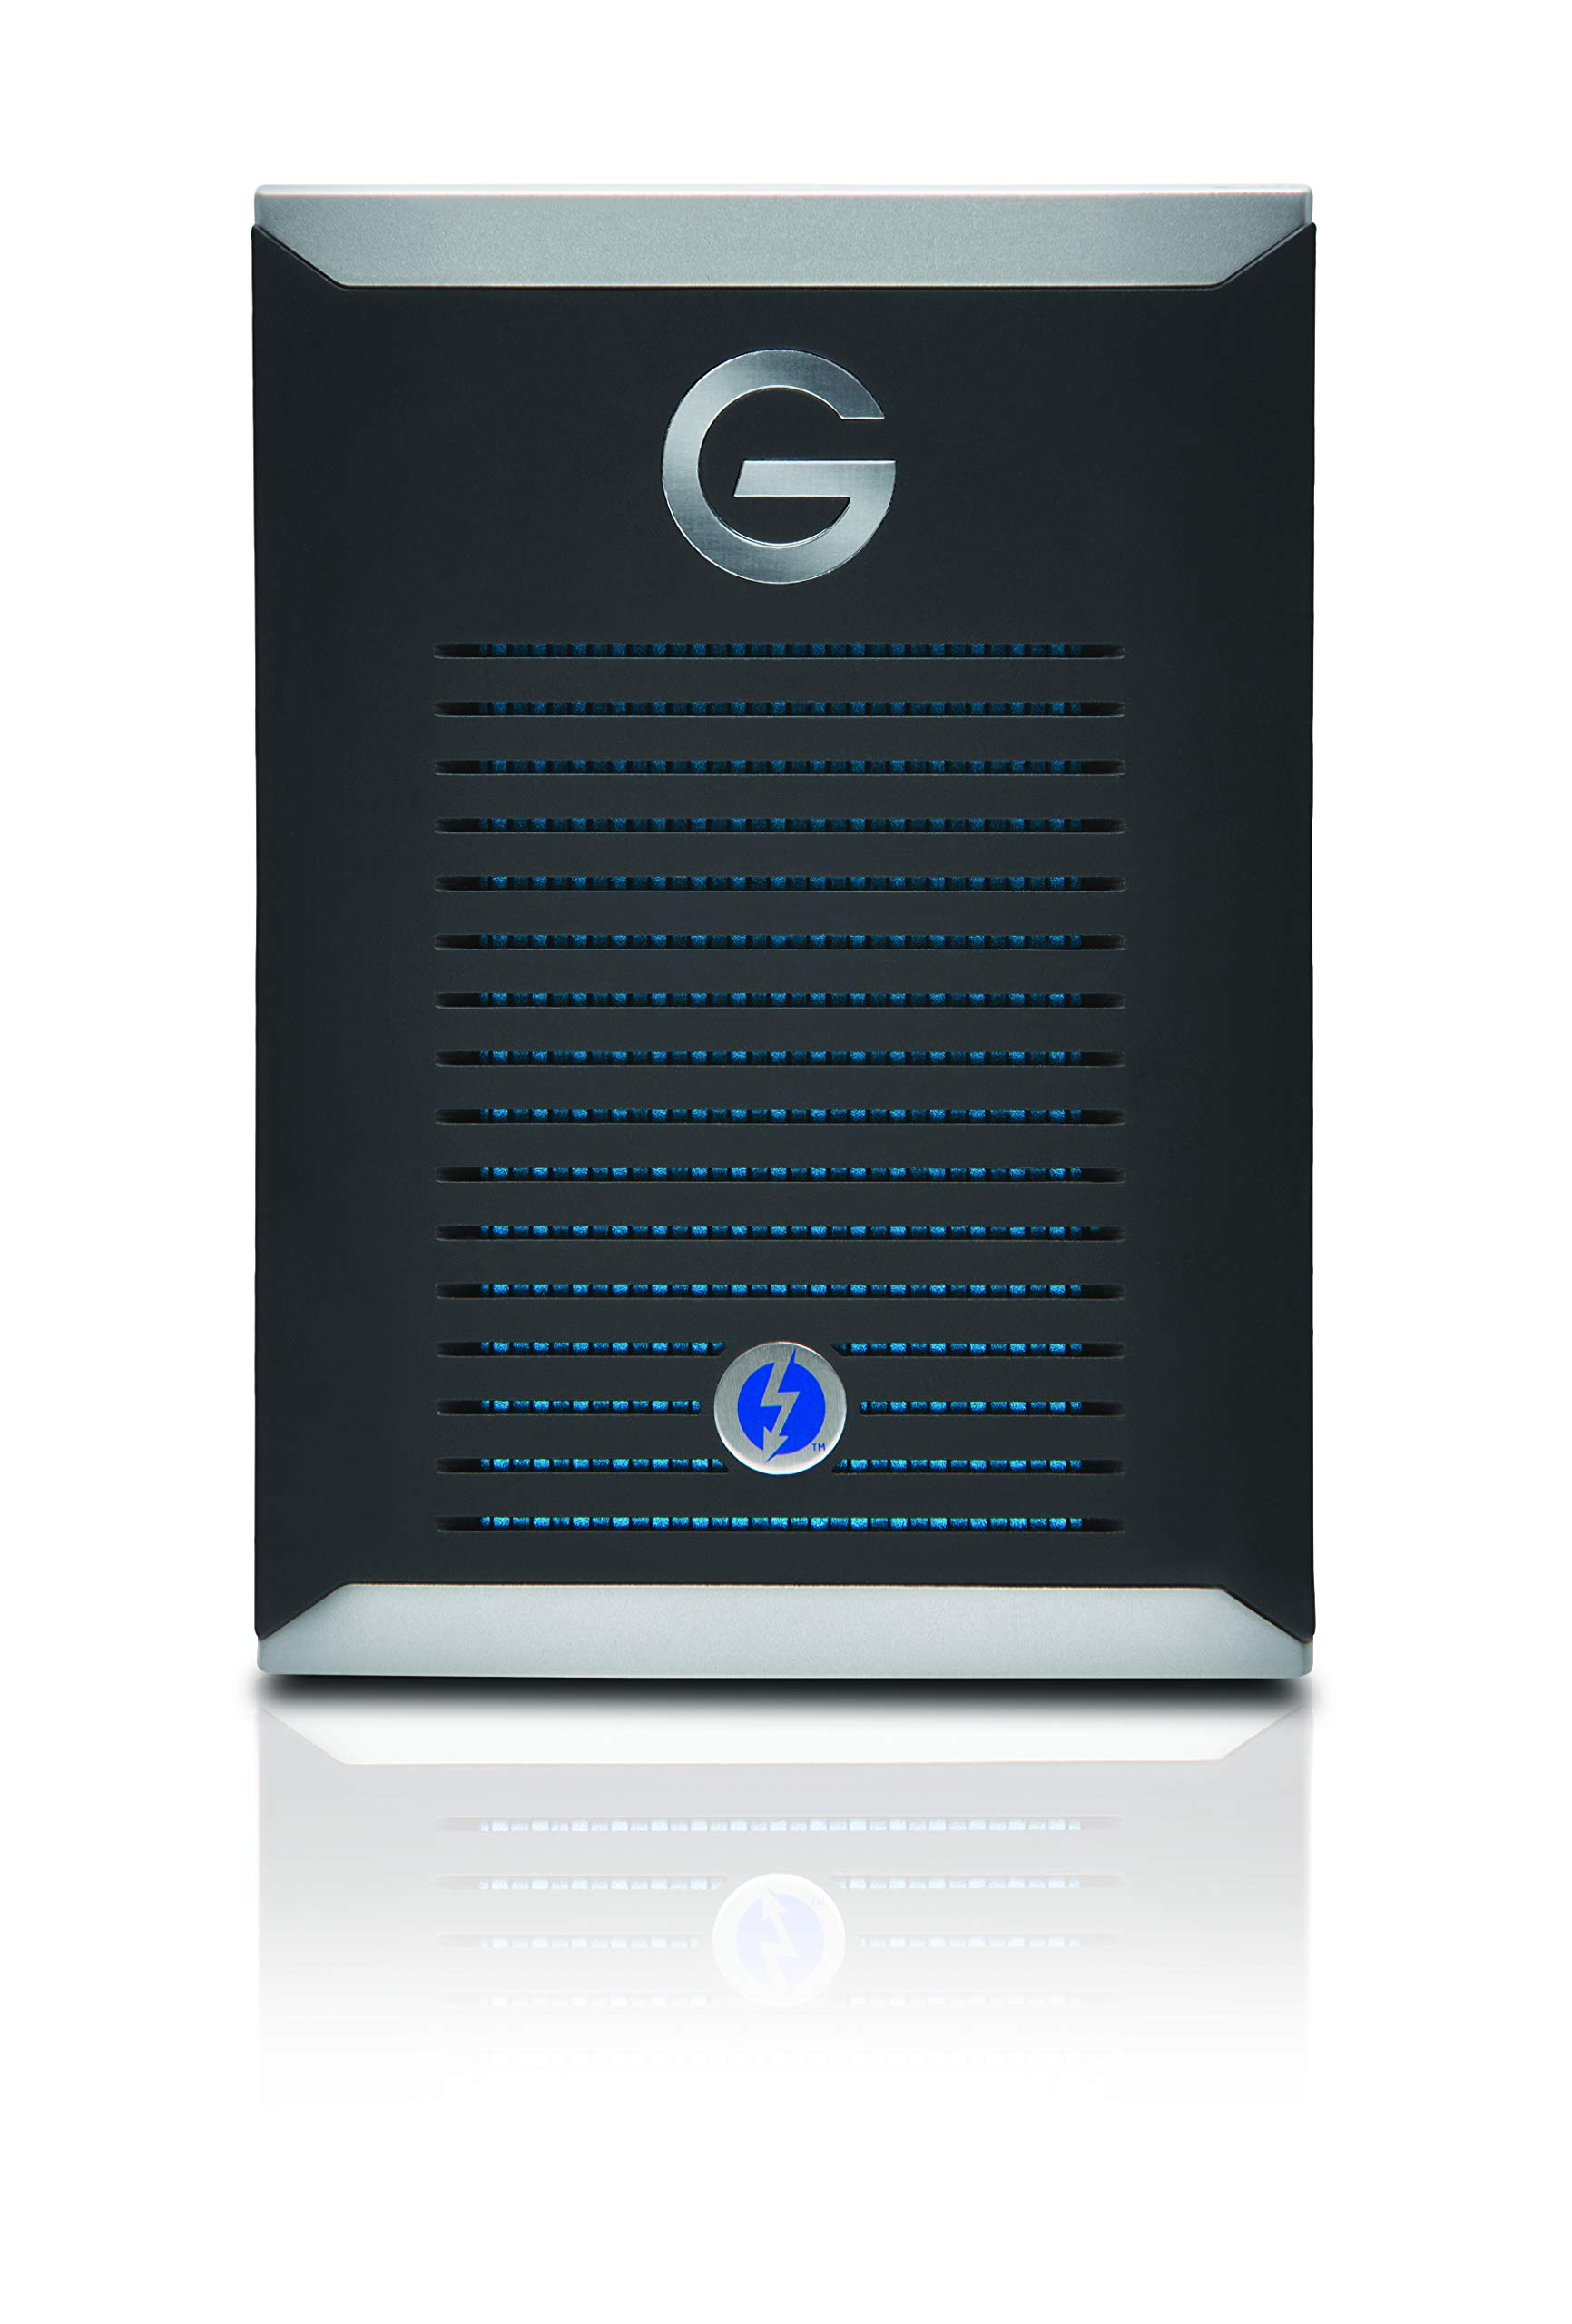 G-Technology 1TB G-Drive Mobile Pro SSD Portable Professional Grade External Storage - Thunderbolt 3-0G10311